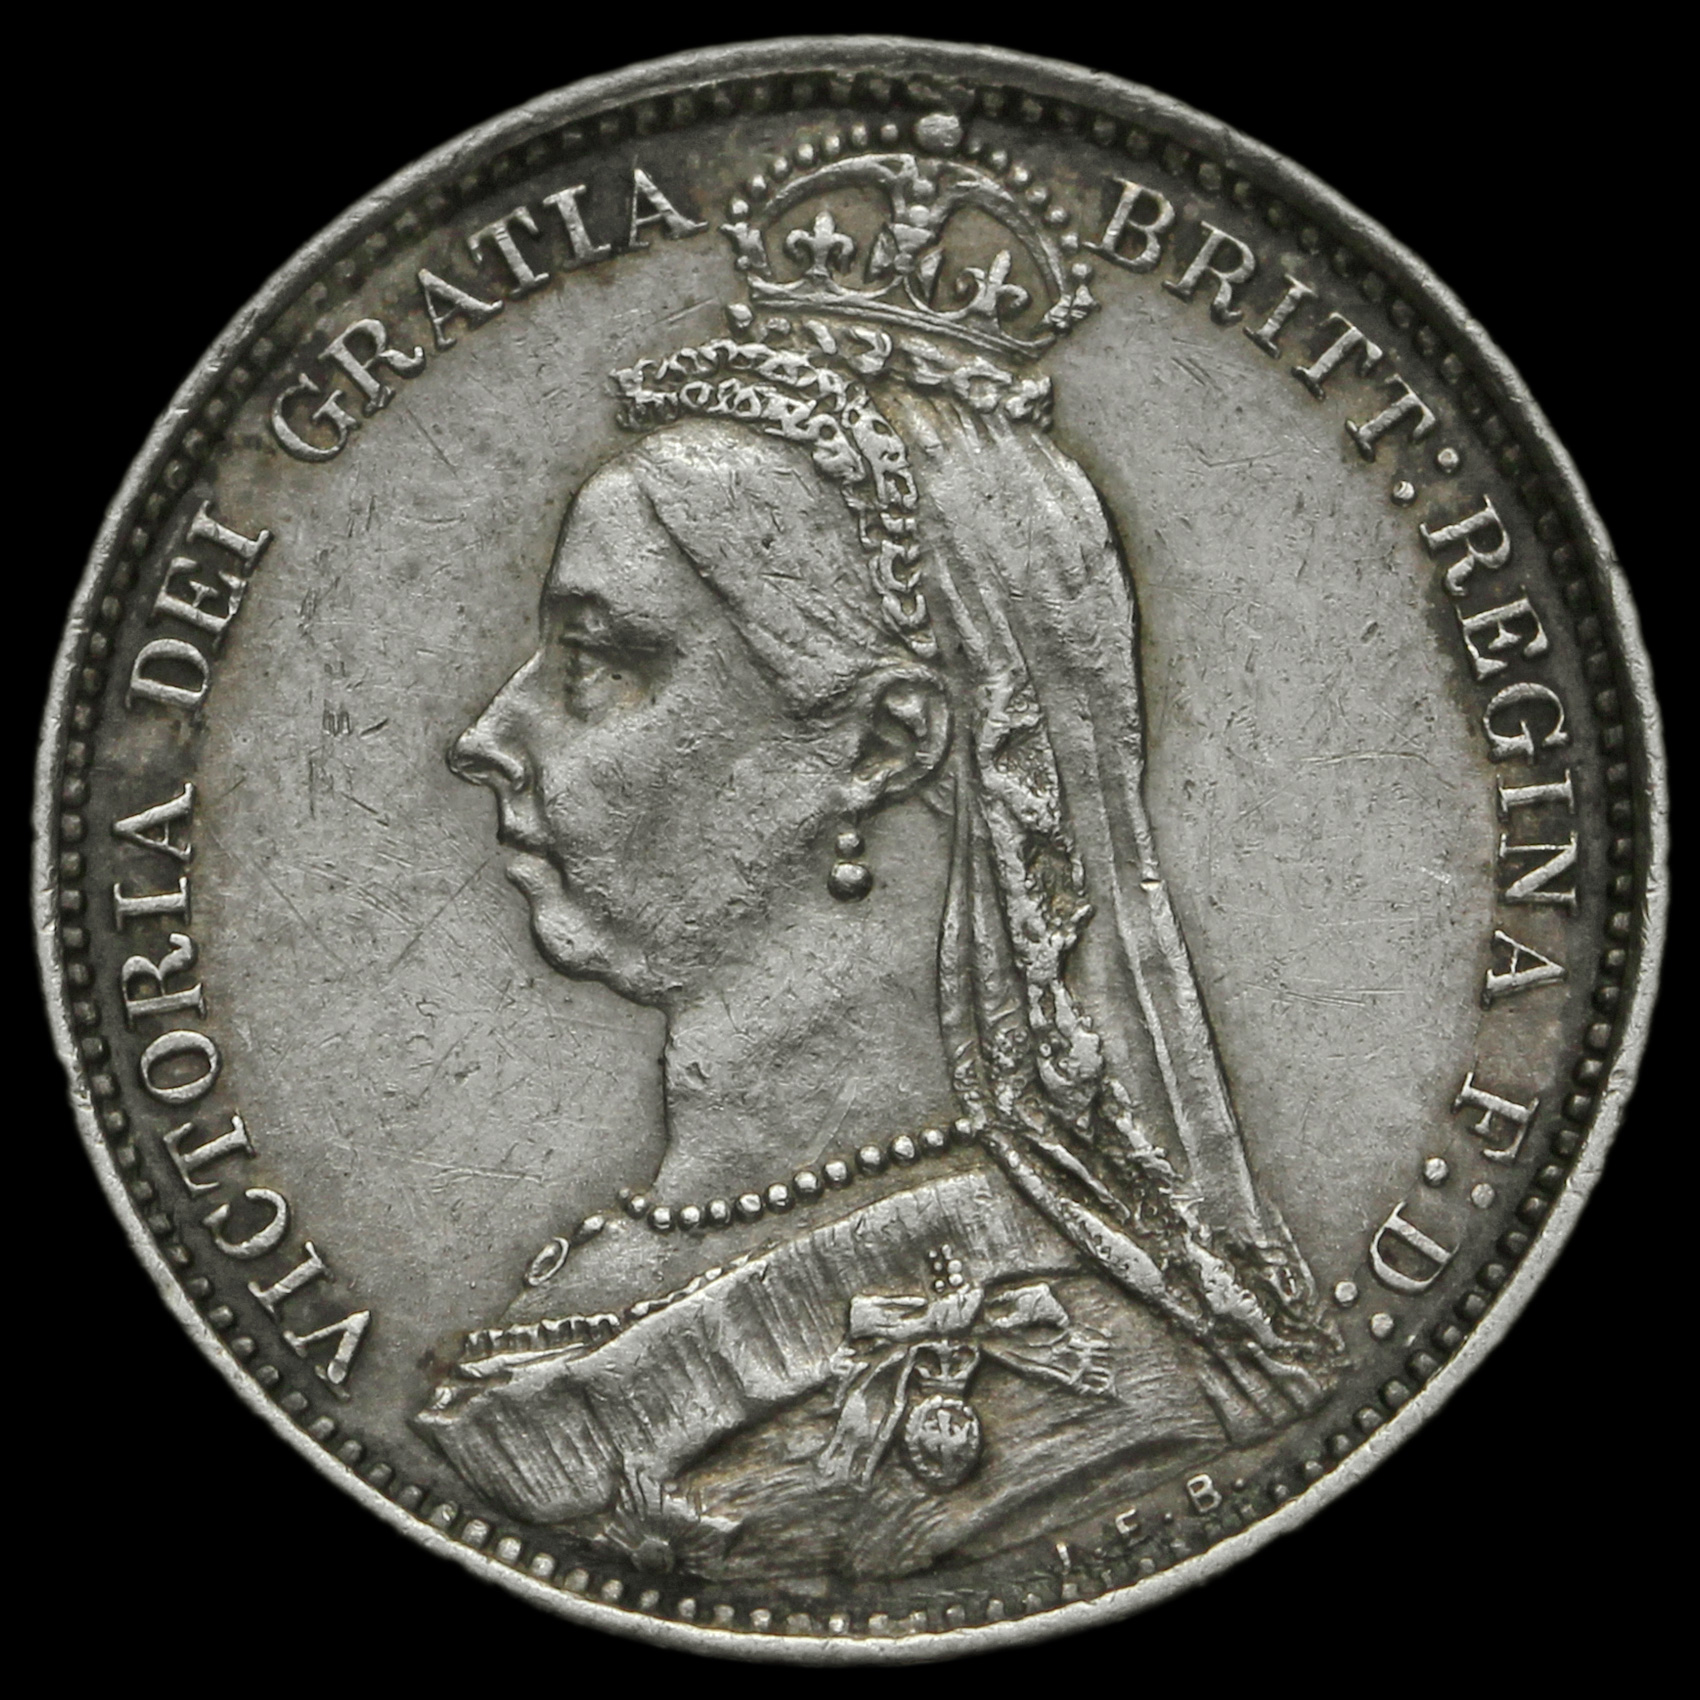 1887 Queen Victoria Jubilee Head Silver Wreath Sixpence Ef